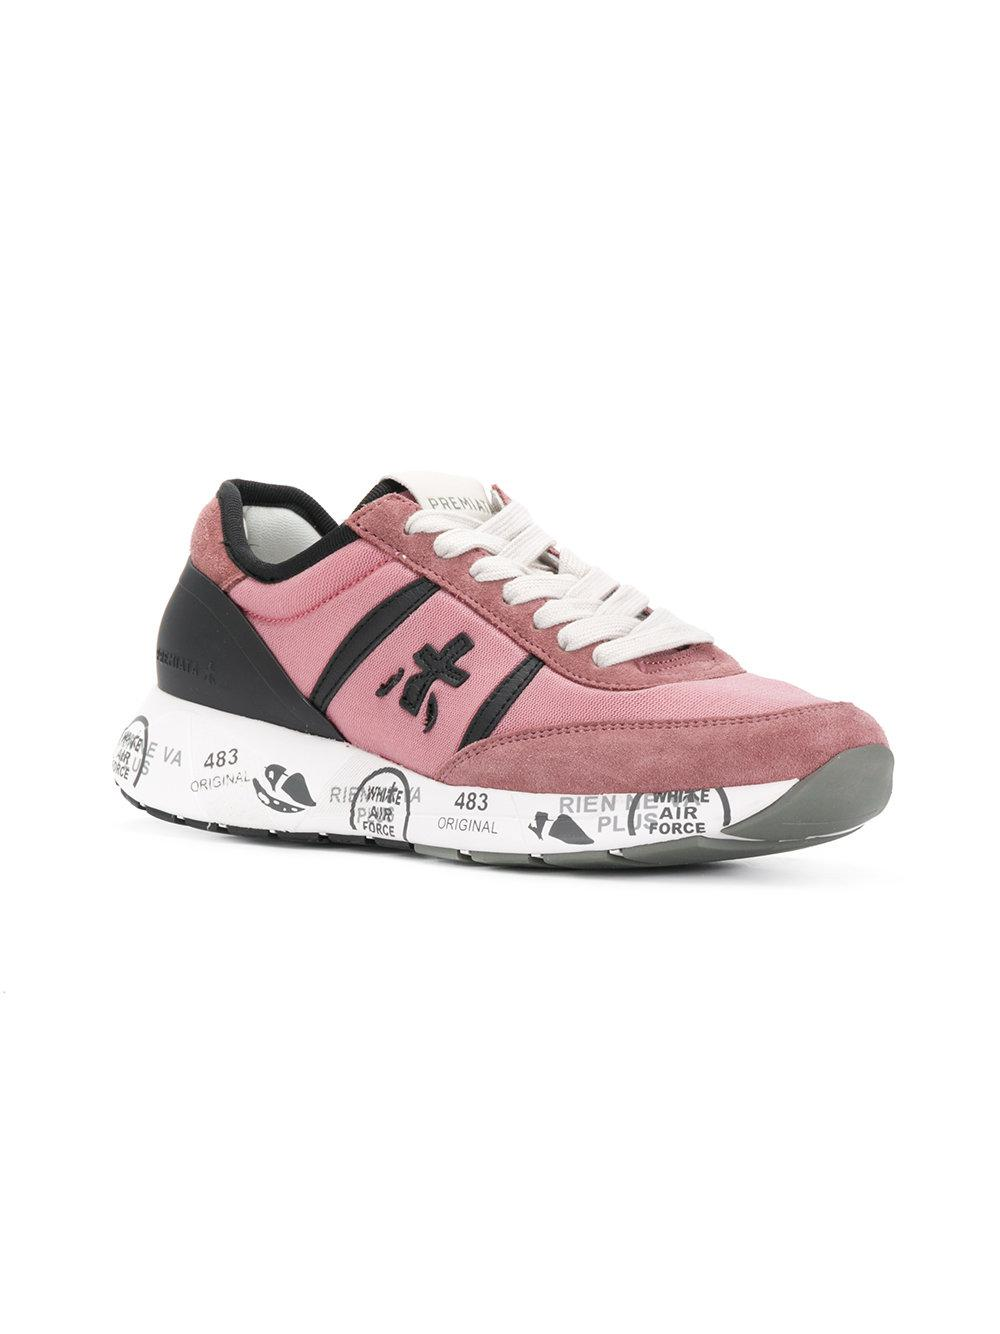 Premiata Leather Embroidered Detail Lace-up Sneakers in Pink & Purple (Pink)